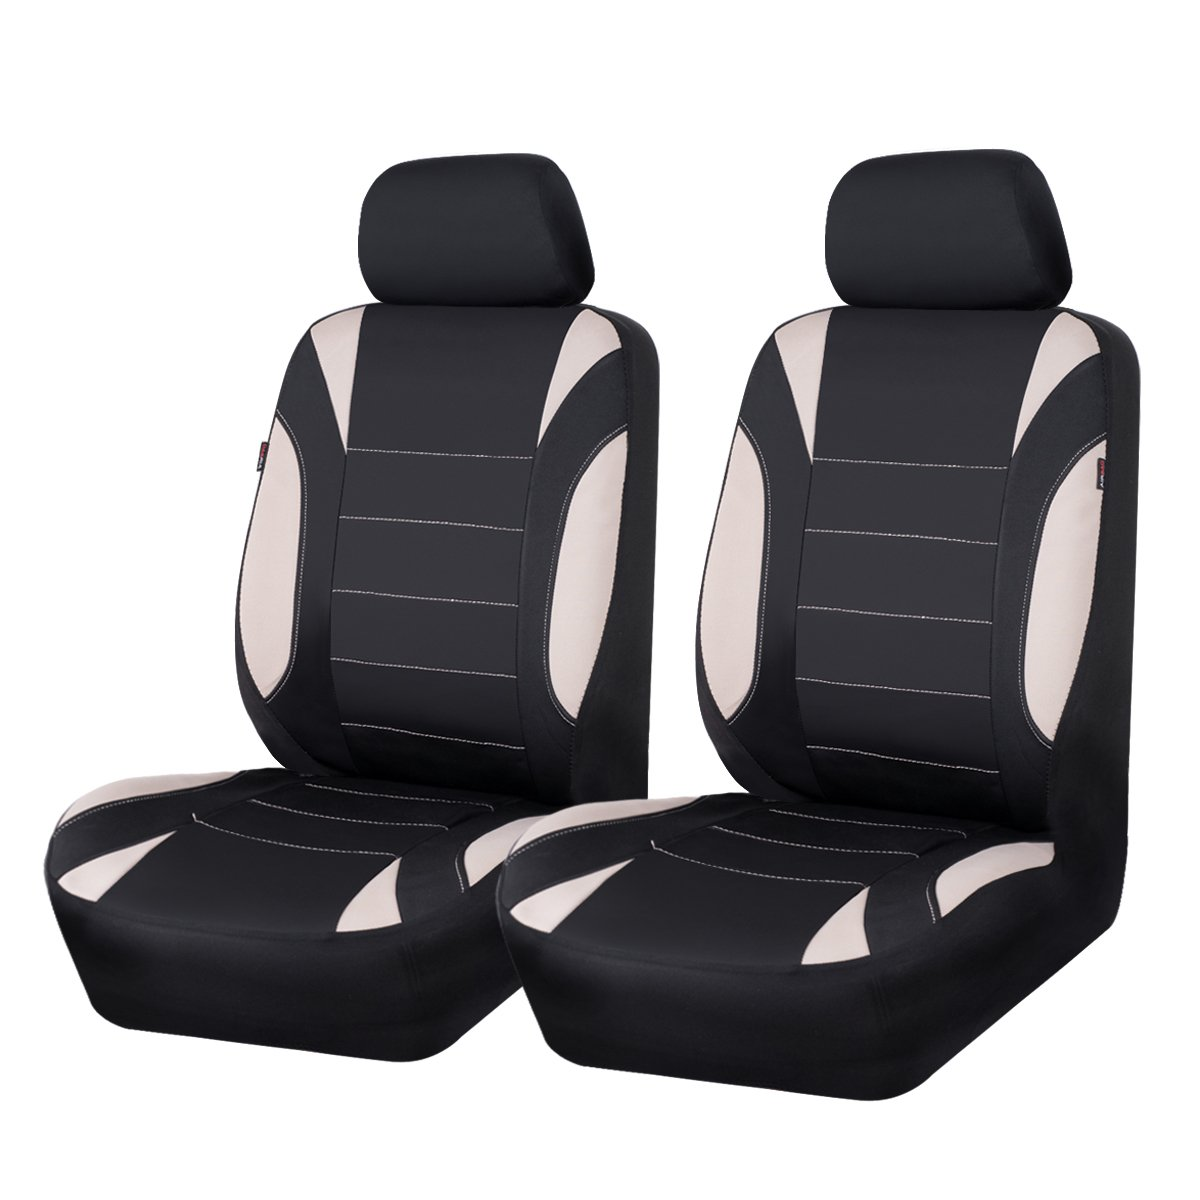 HOLIDAY SALE: CAR PASS Neoprene 6PCS waterproof Two front seat car seat covers set- Universal fit for vehicles, Car With 5mm Composite Sponge Inside,Airbag Compatiable(Black With Gray) LJ